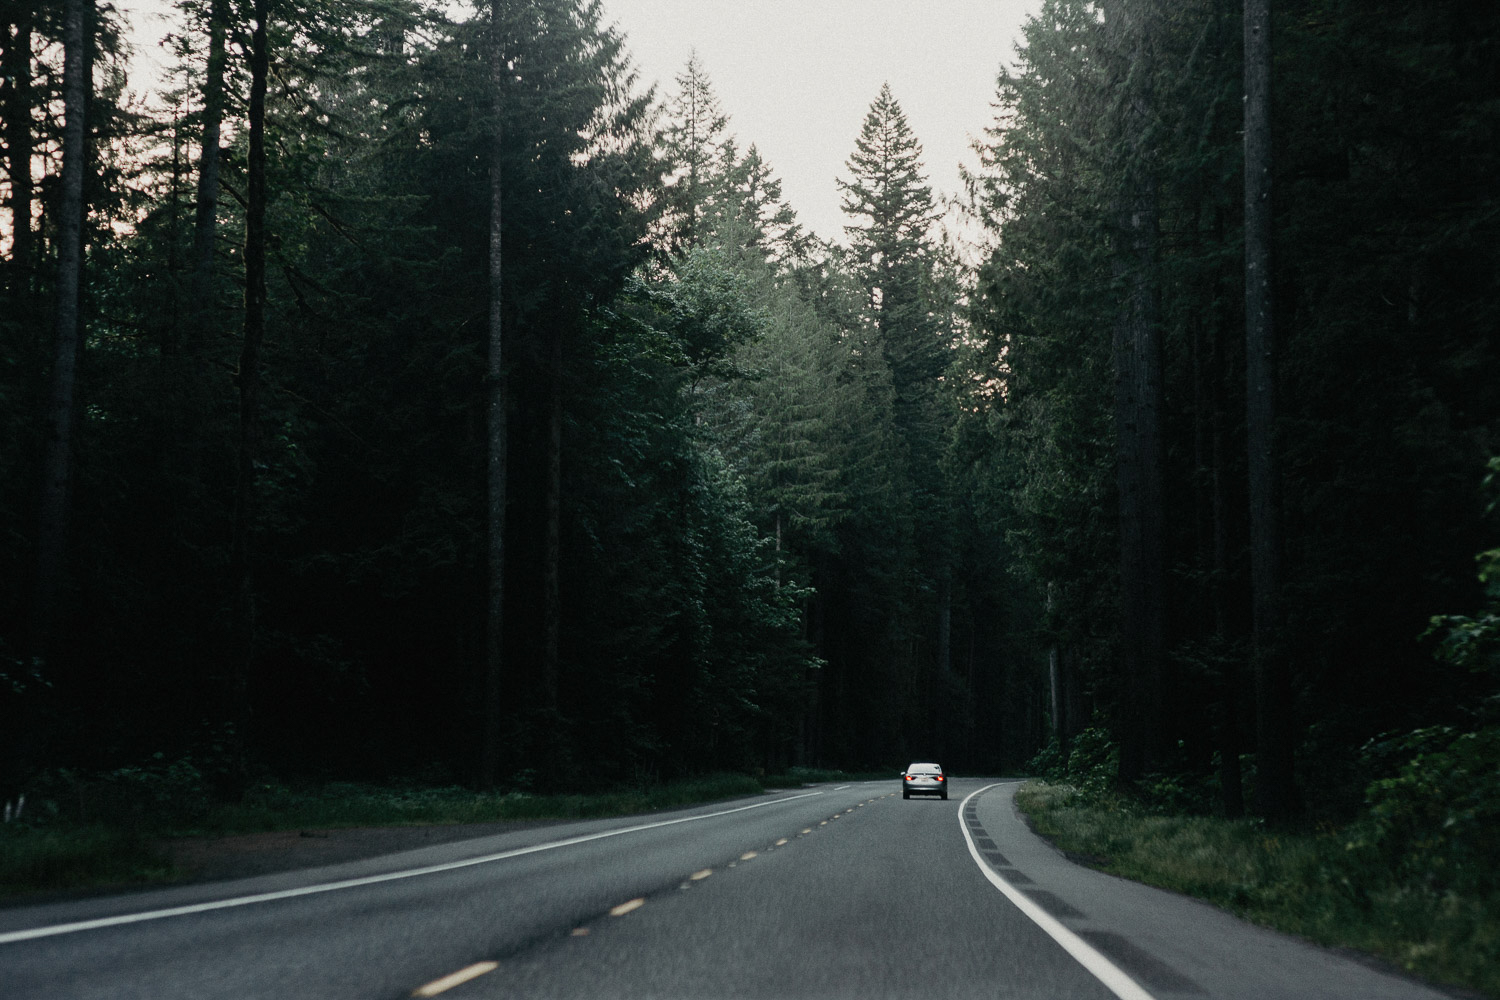 Image of car on the road surrounded by green pine trees in Portland